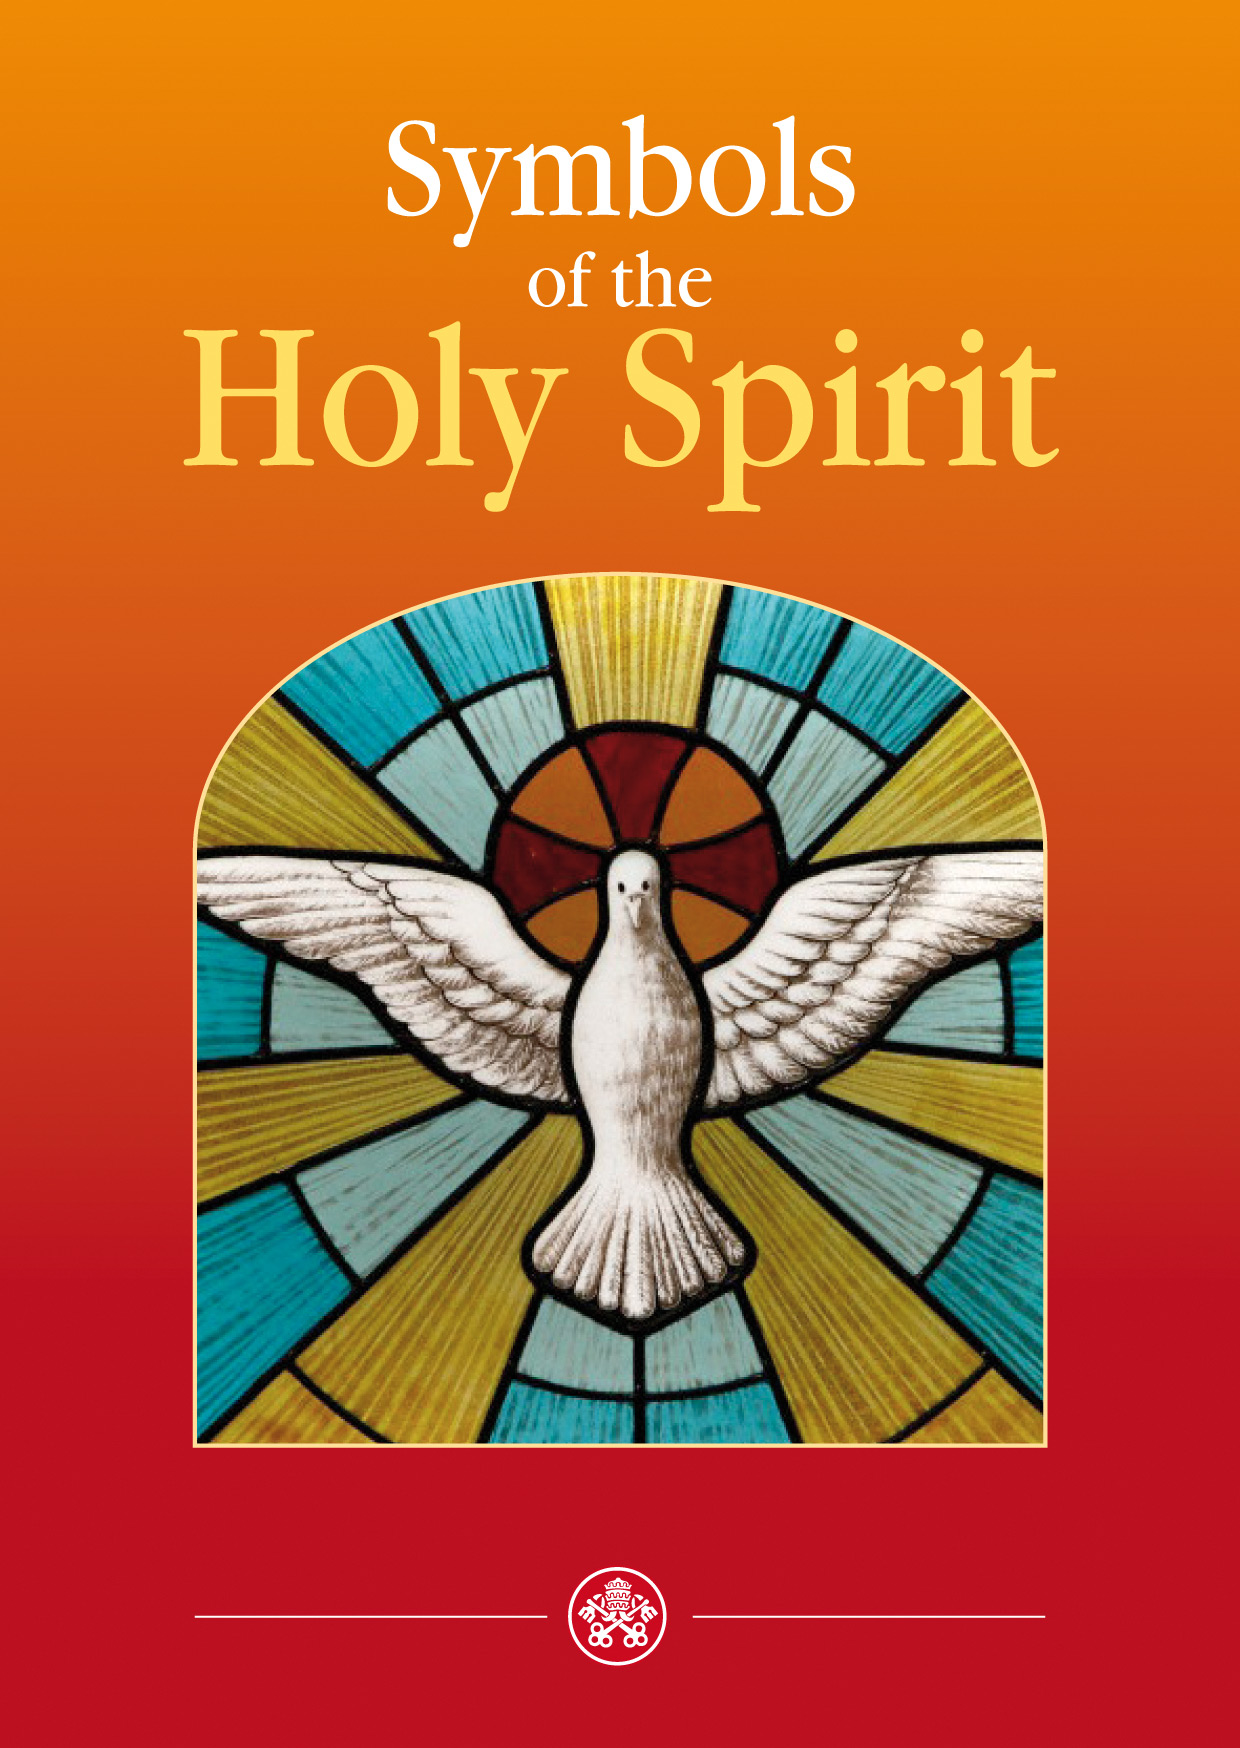 pentecostalism holy spirit and style renewal